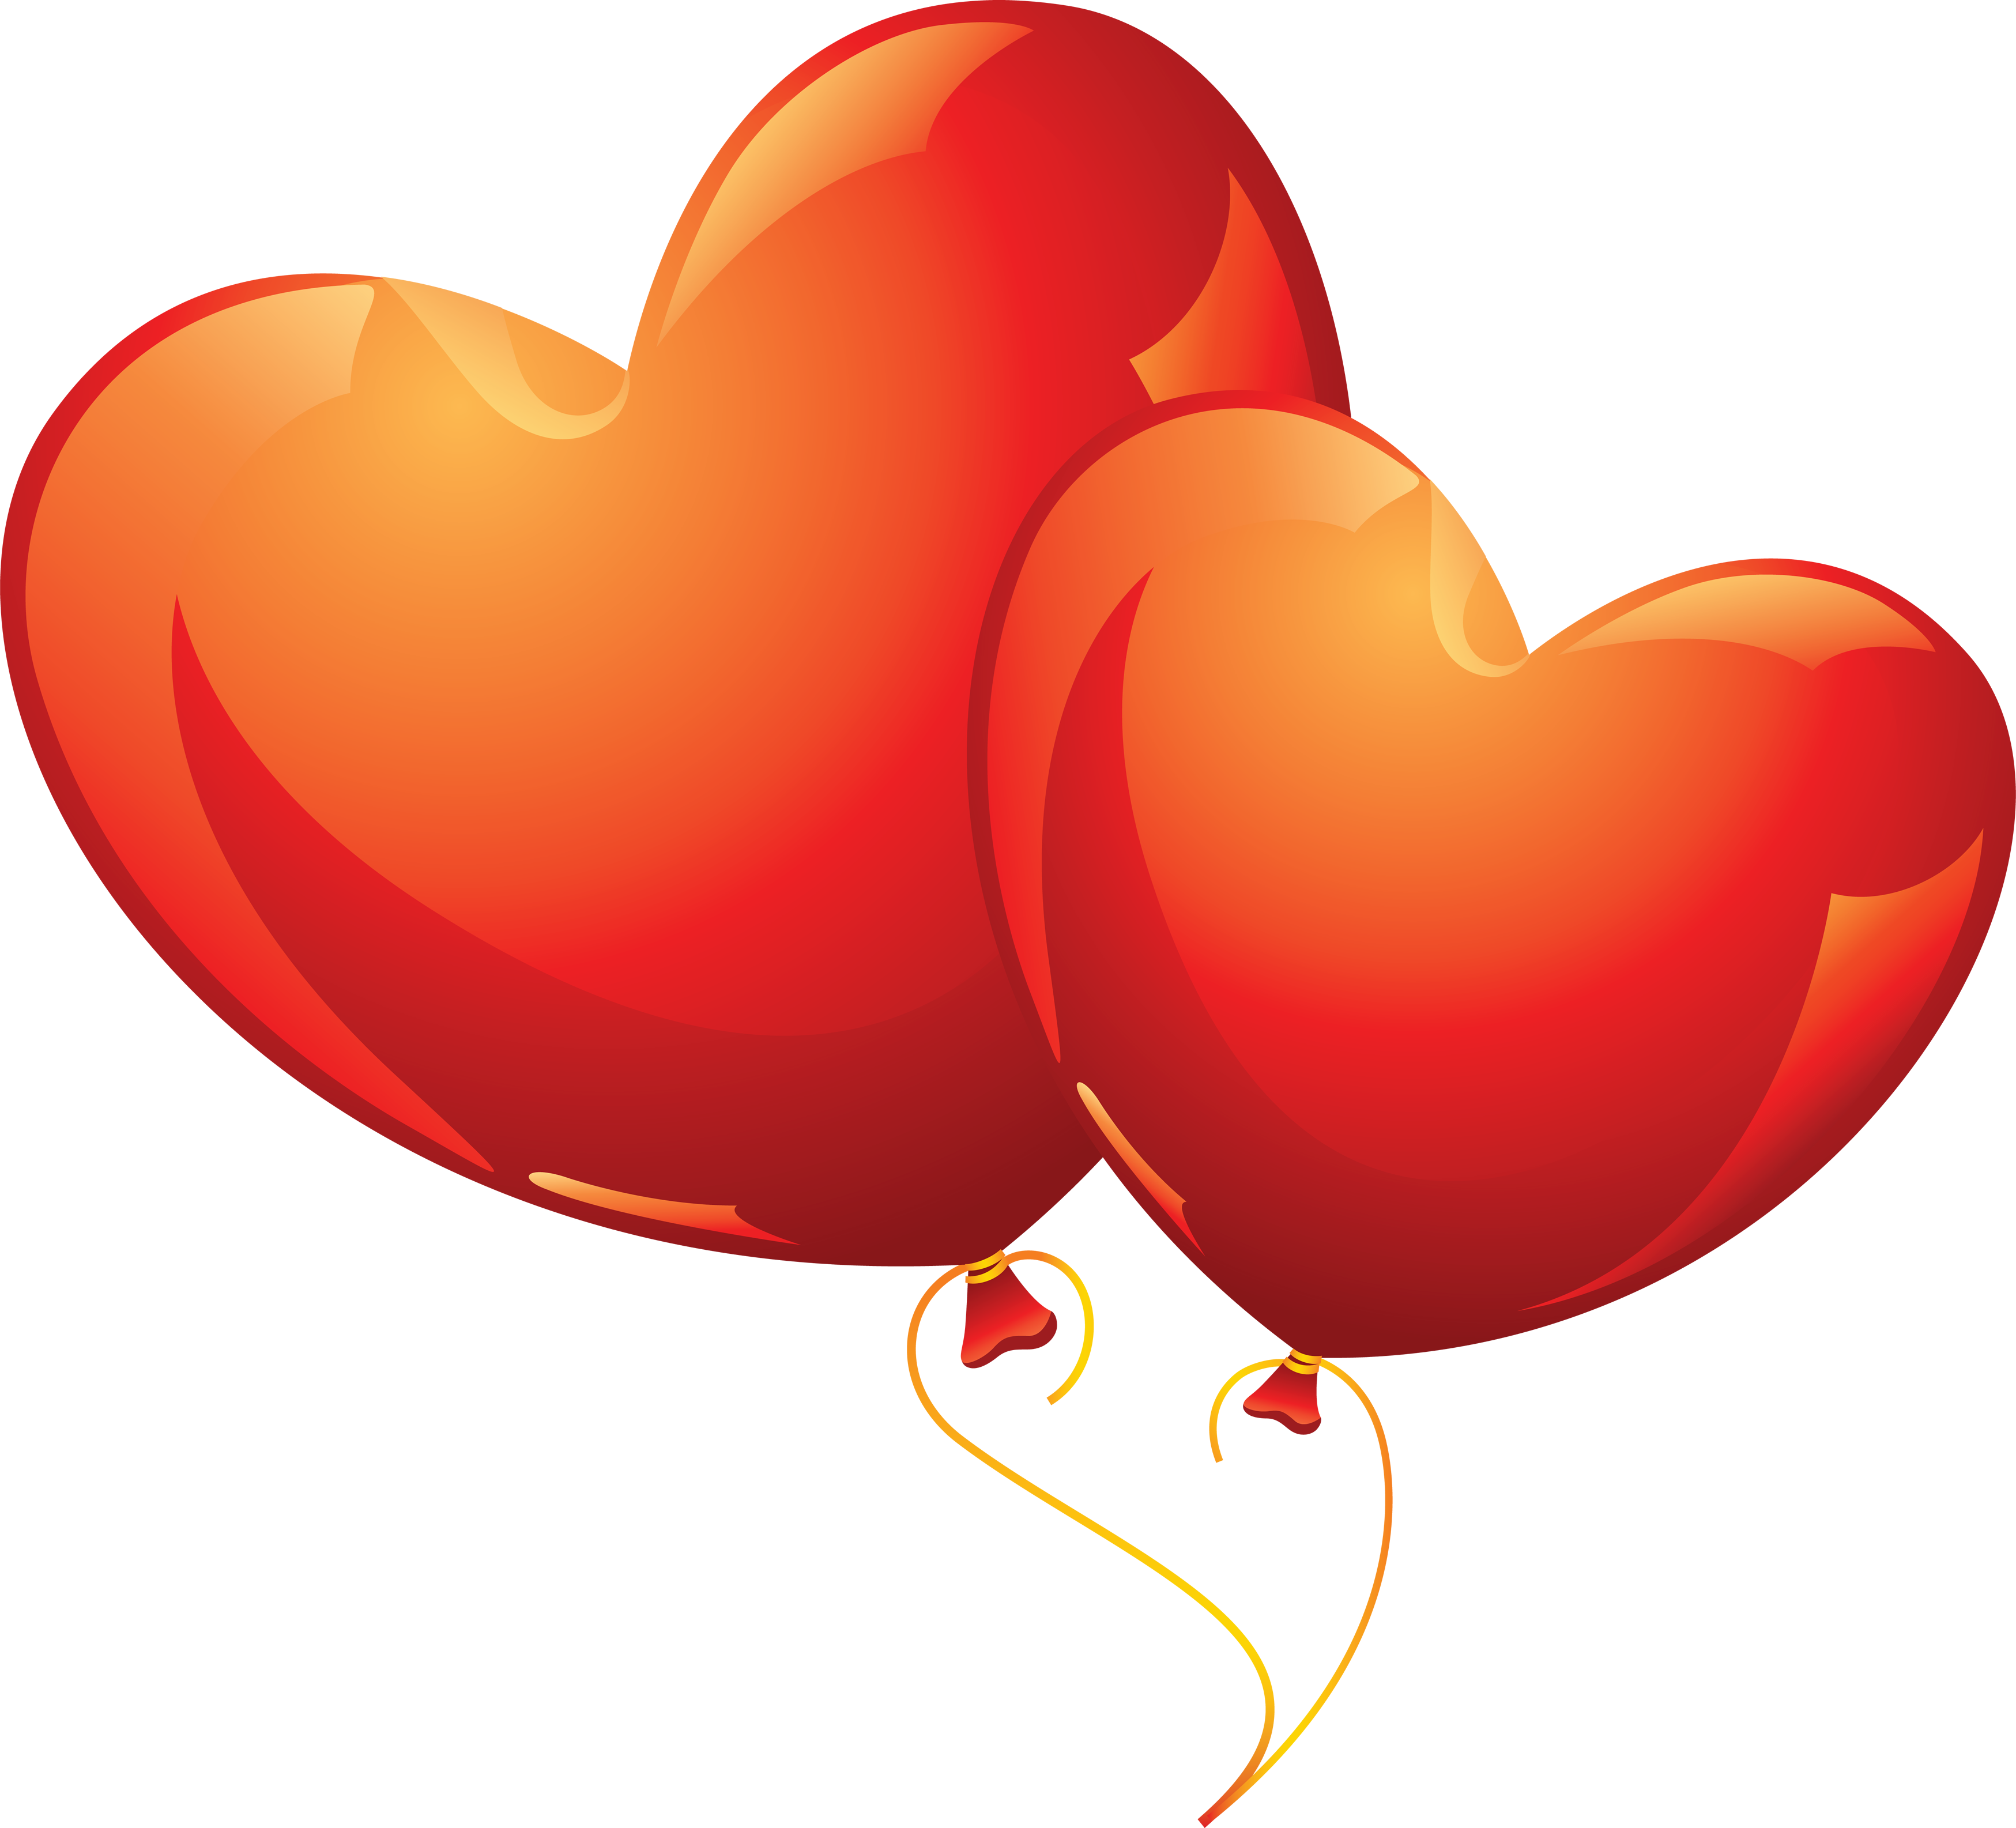 3497x3171 Balloon Png Images, Free Picture Download With Transparency